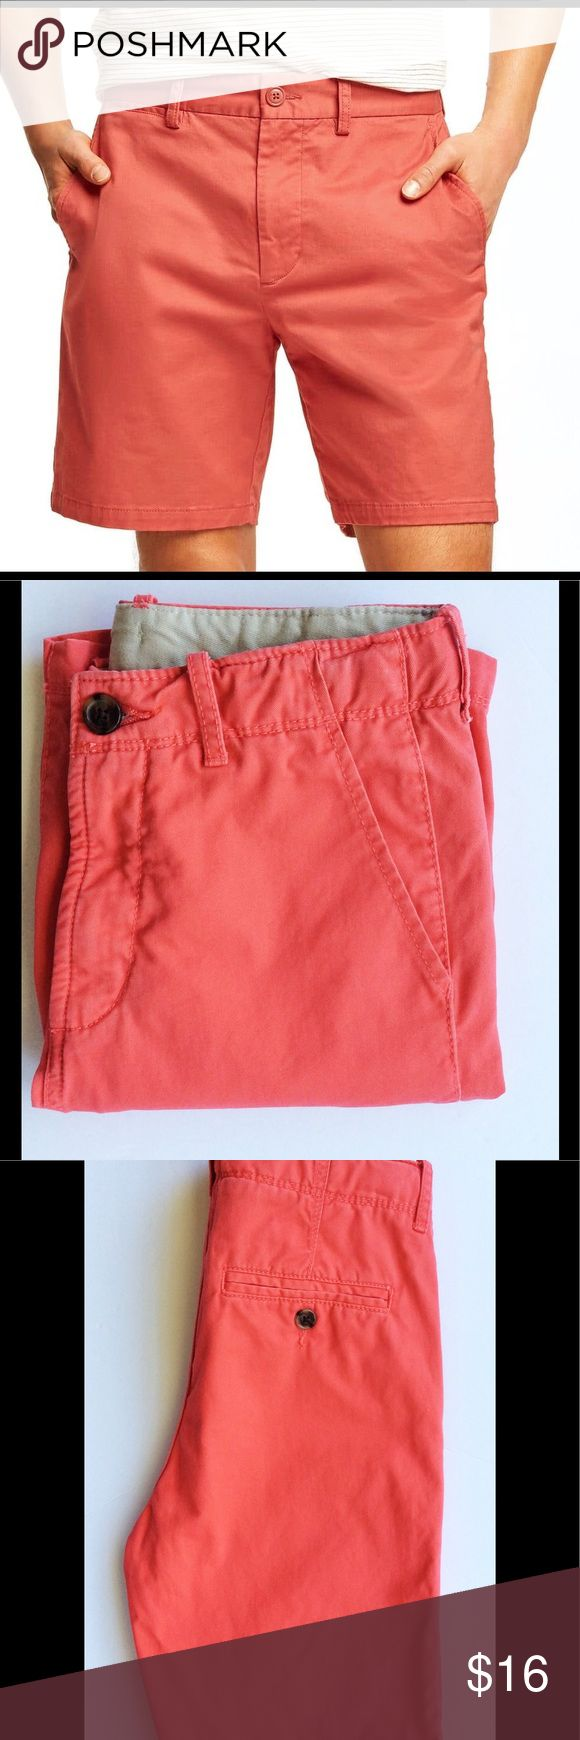 Gap Kids Boys Walking Shorts Gap kids walking shorts in a salmon color. Size 14 slim, measurements are approx., Waist 26 inches, Inseam 9 inches. Features a hidden adjustable waistband, two front pockets, one front coin pocket, and two button back pockets. 100% cotton. Gap Kids Bottoms Shorts